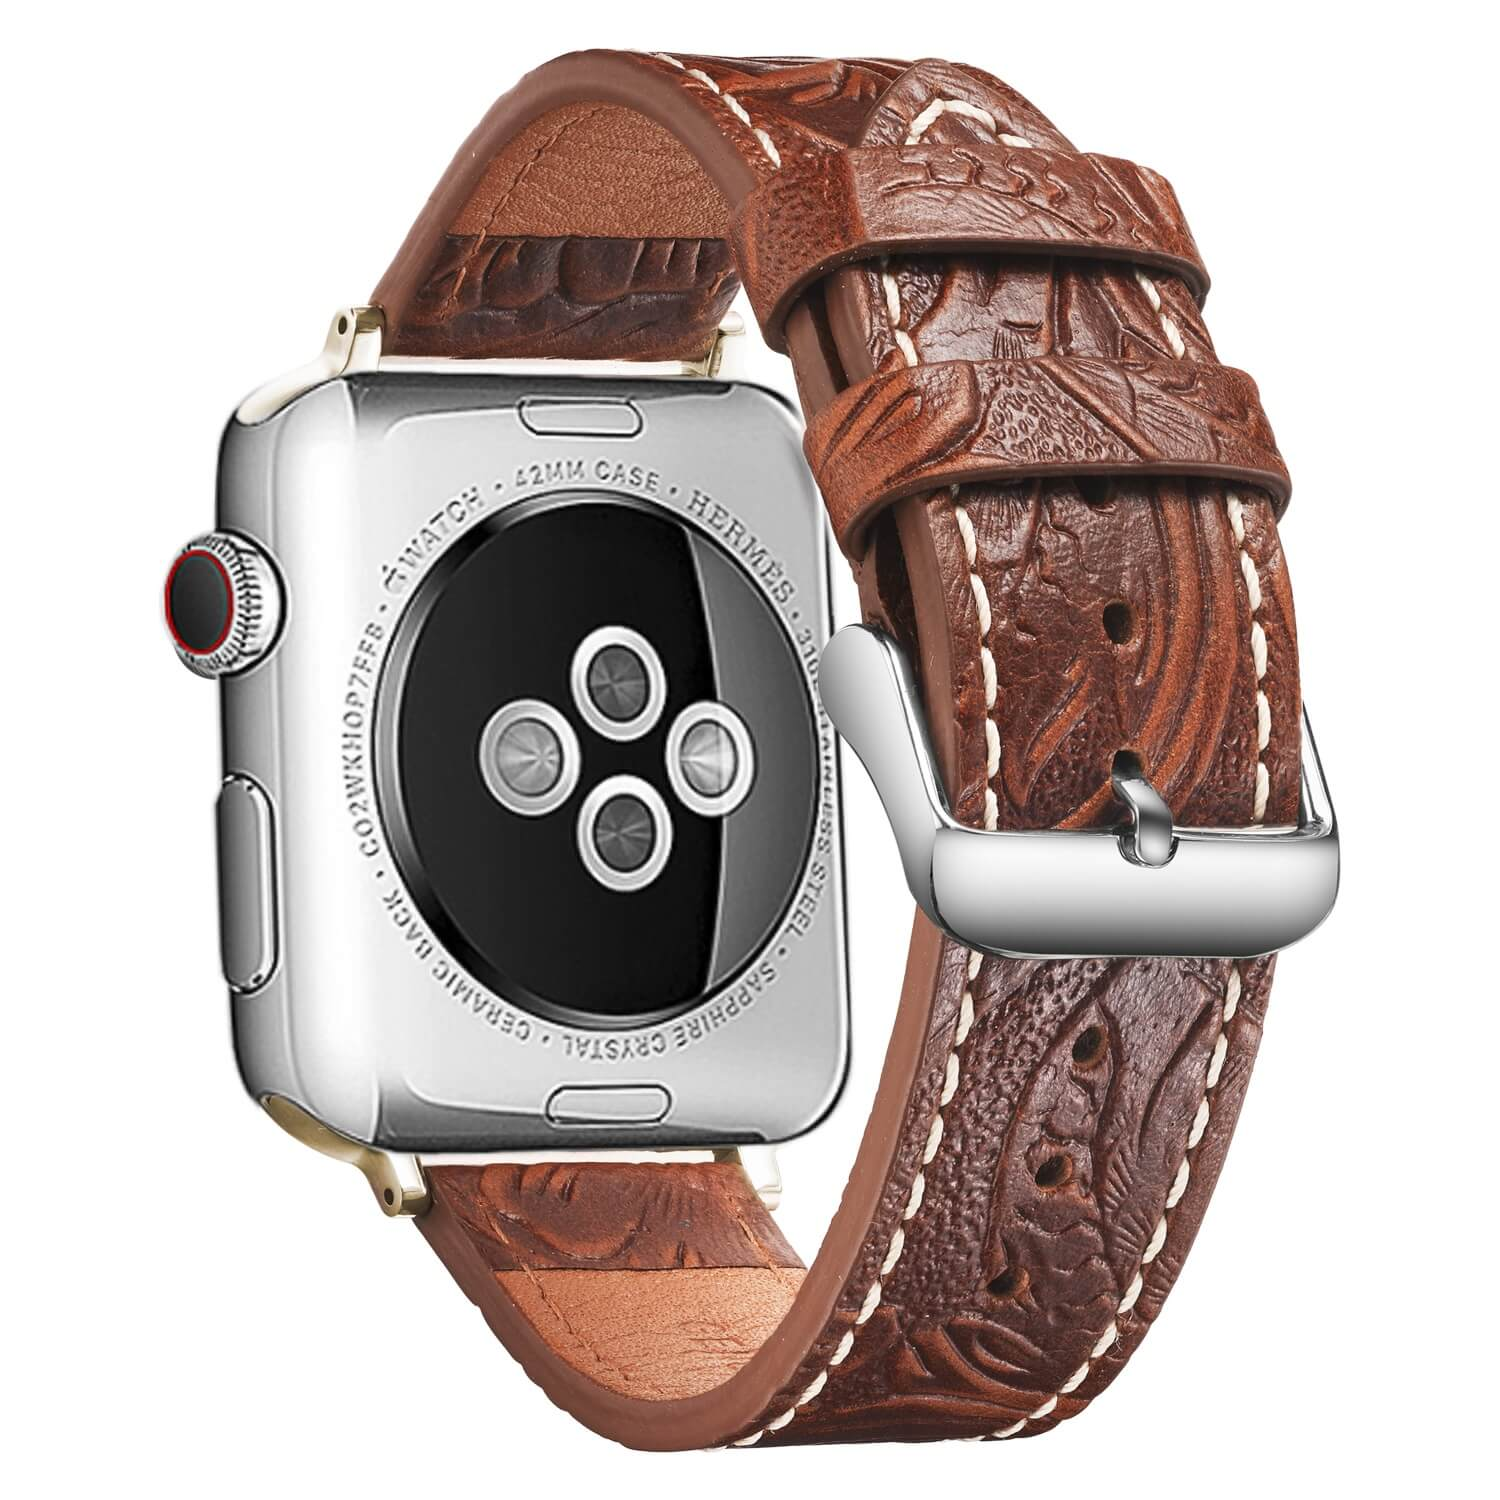 Simai Top leather wrist cuff watch straps company for Huawei-1